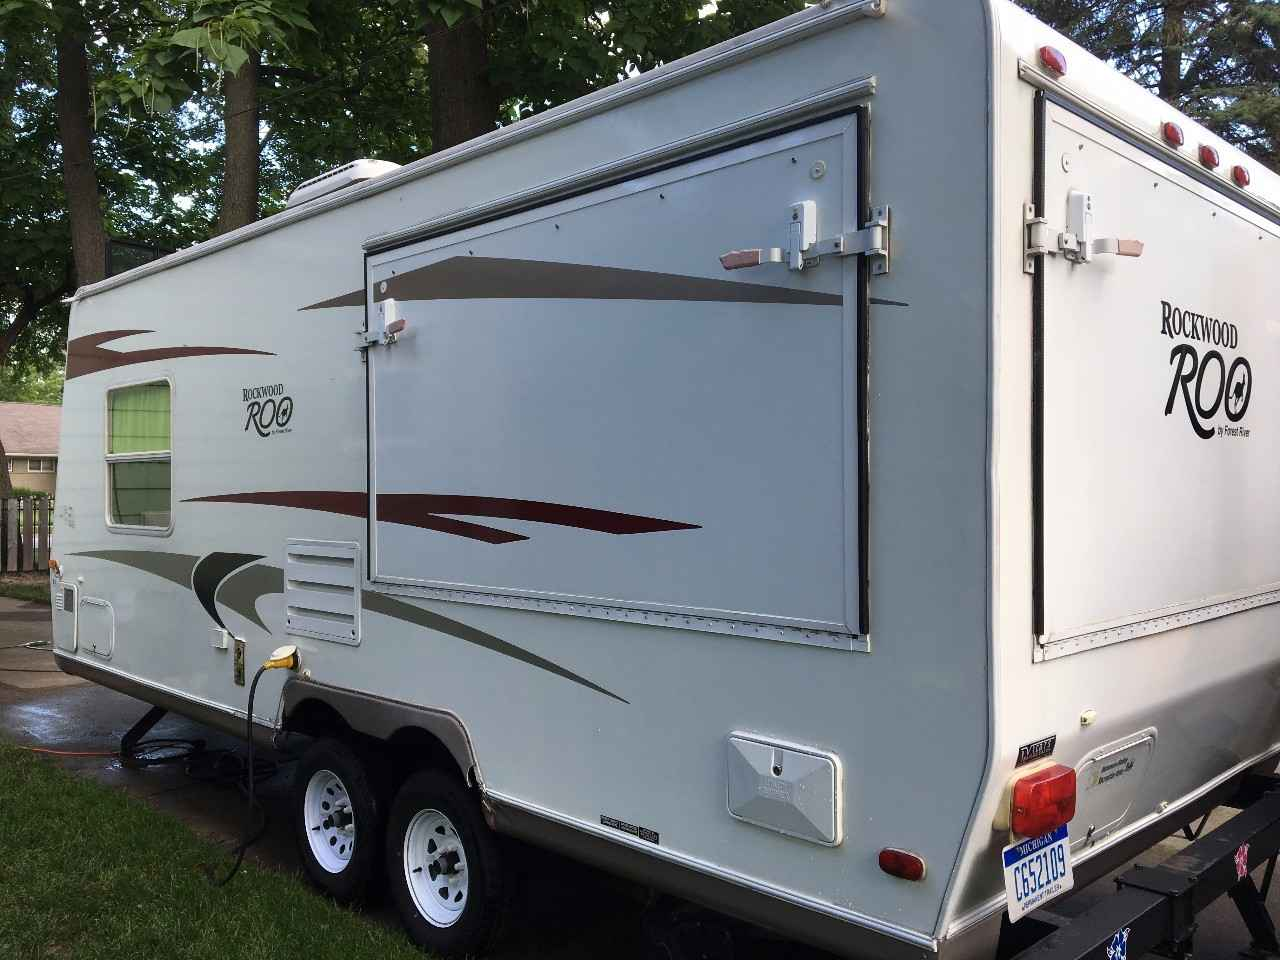 2008 Used Forest River Rockwood Roo 233 Travel Trailer In